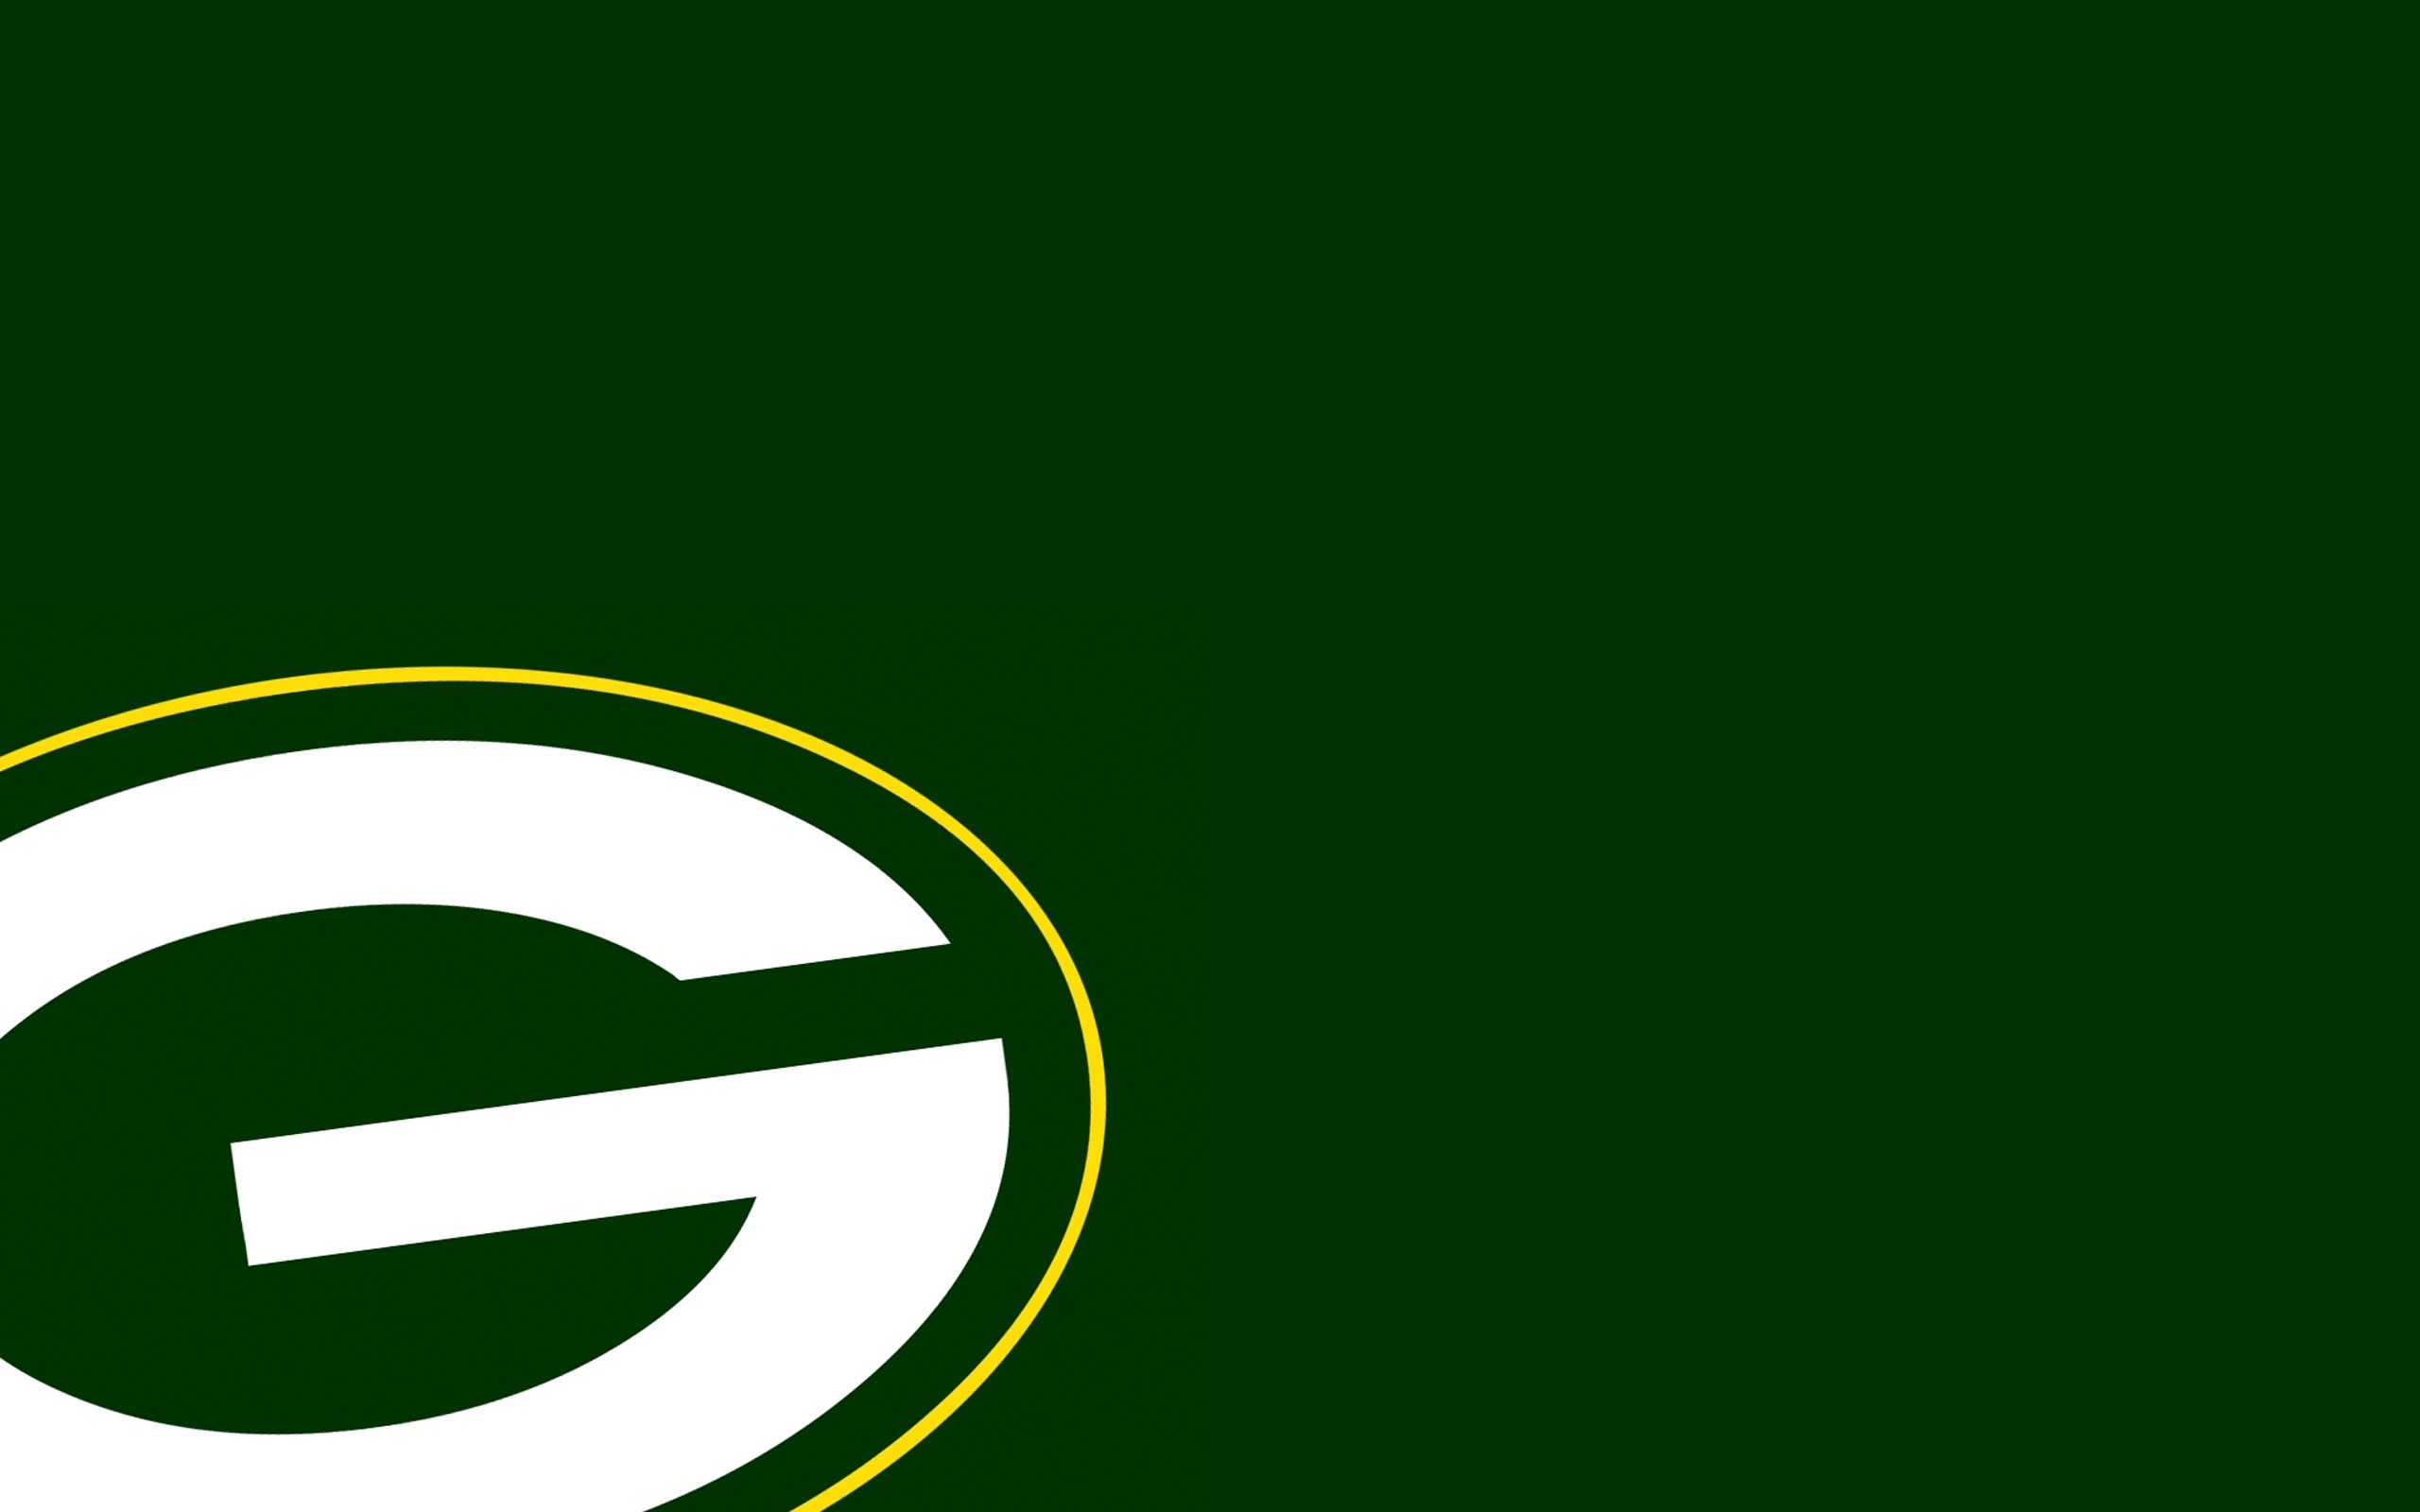 2560x1600 Green Bay Packers Wallpaper 22660